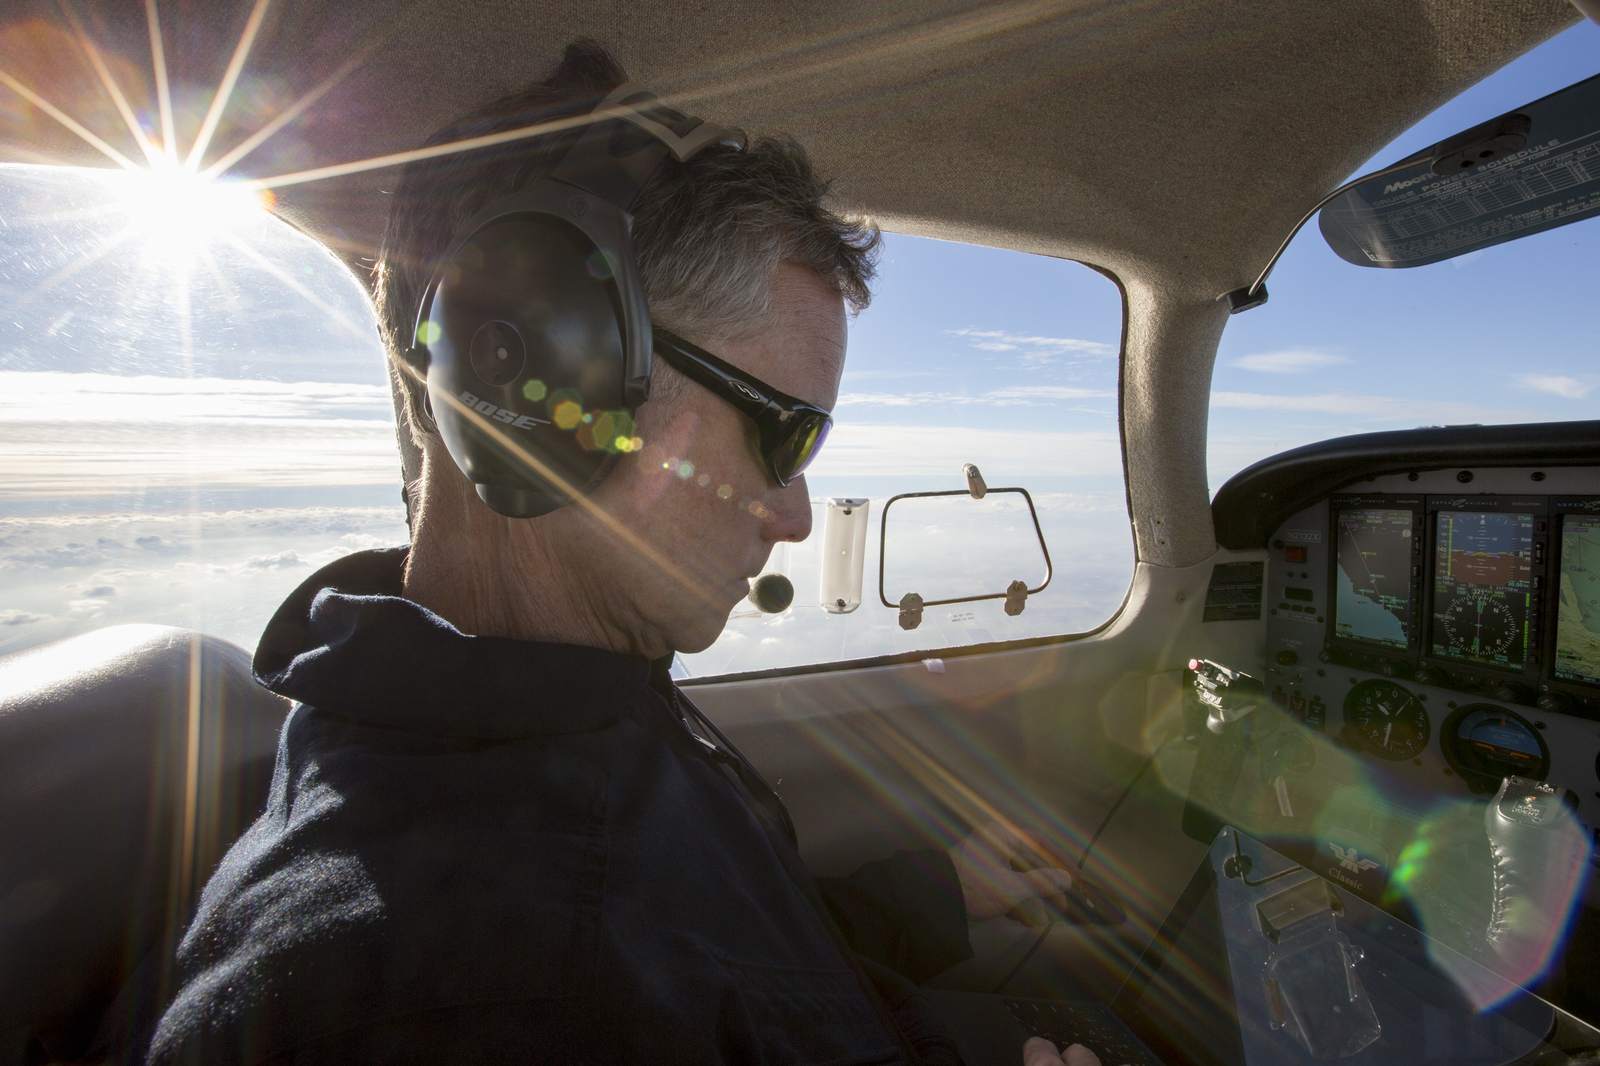 Pilot and UC Davis project scientist Stephen Conley looks at methane emission data from the Aliso Canyon Natural Gas Storage Facility leak. Conley, flying in a pollution-detecting airplane, provided the first estimates of methane emissions spewing from the Southern California leak.